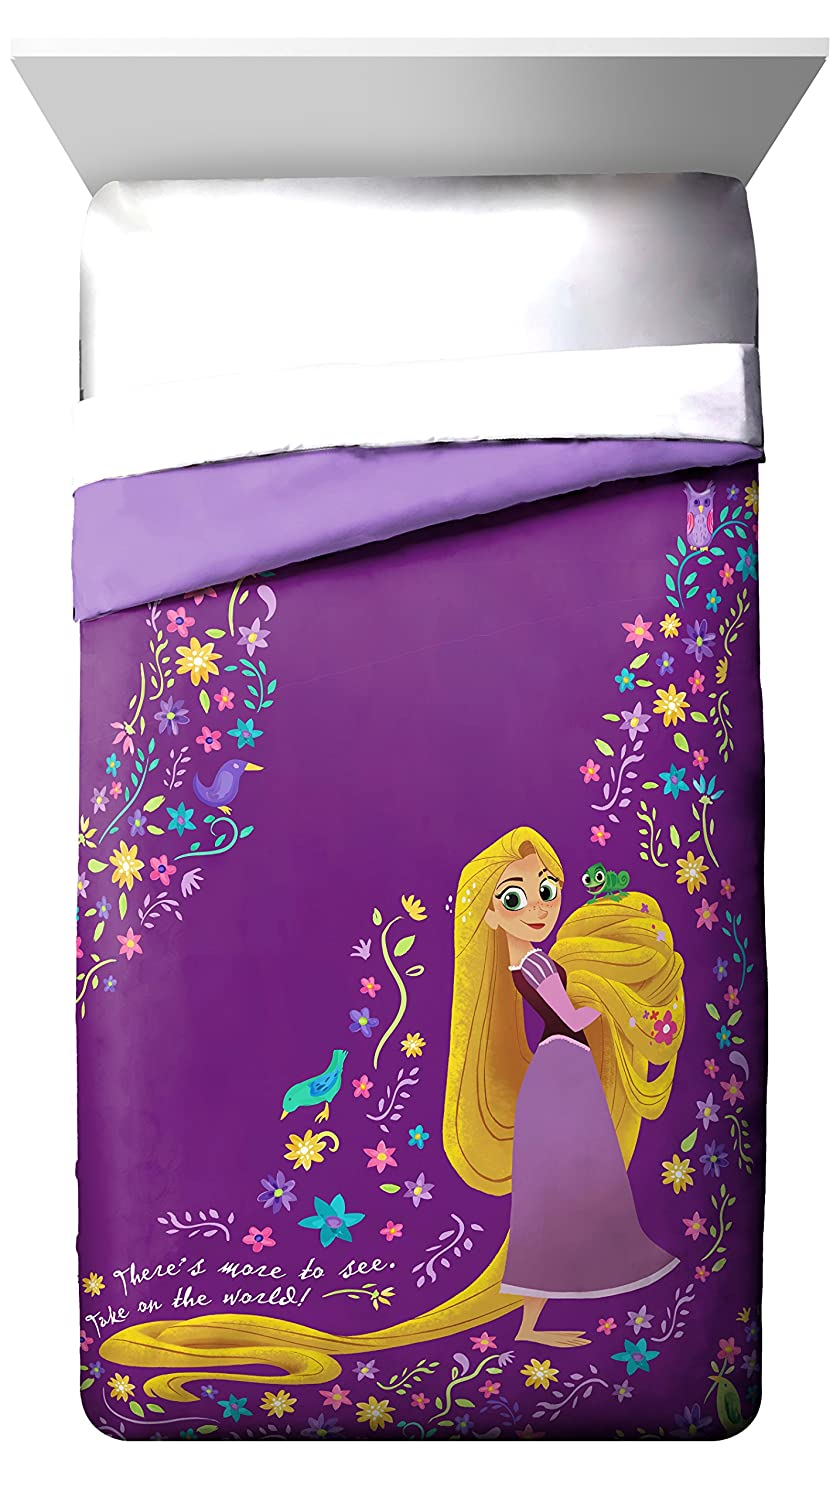 "Disney Tangled There Is More 72"" x 86"" Twin/Full Reversible Comforter, Purple/Yellow"